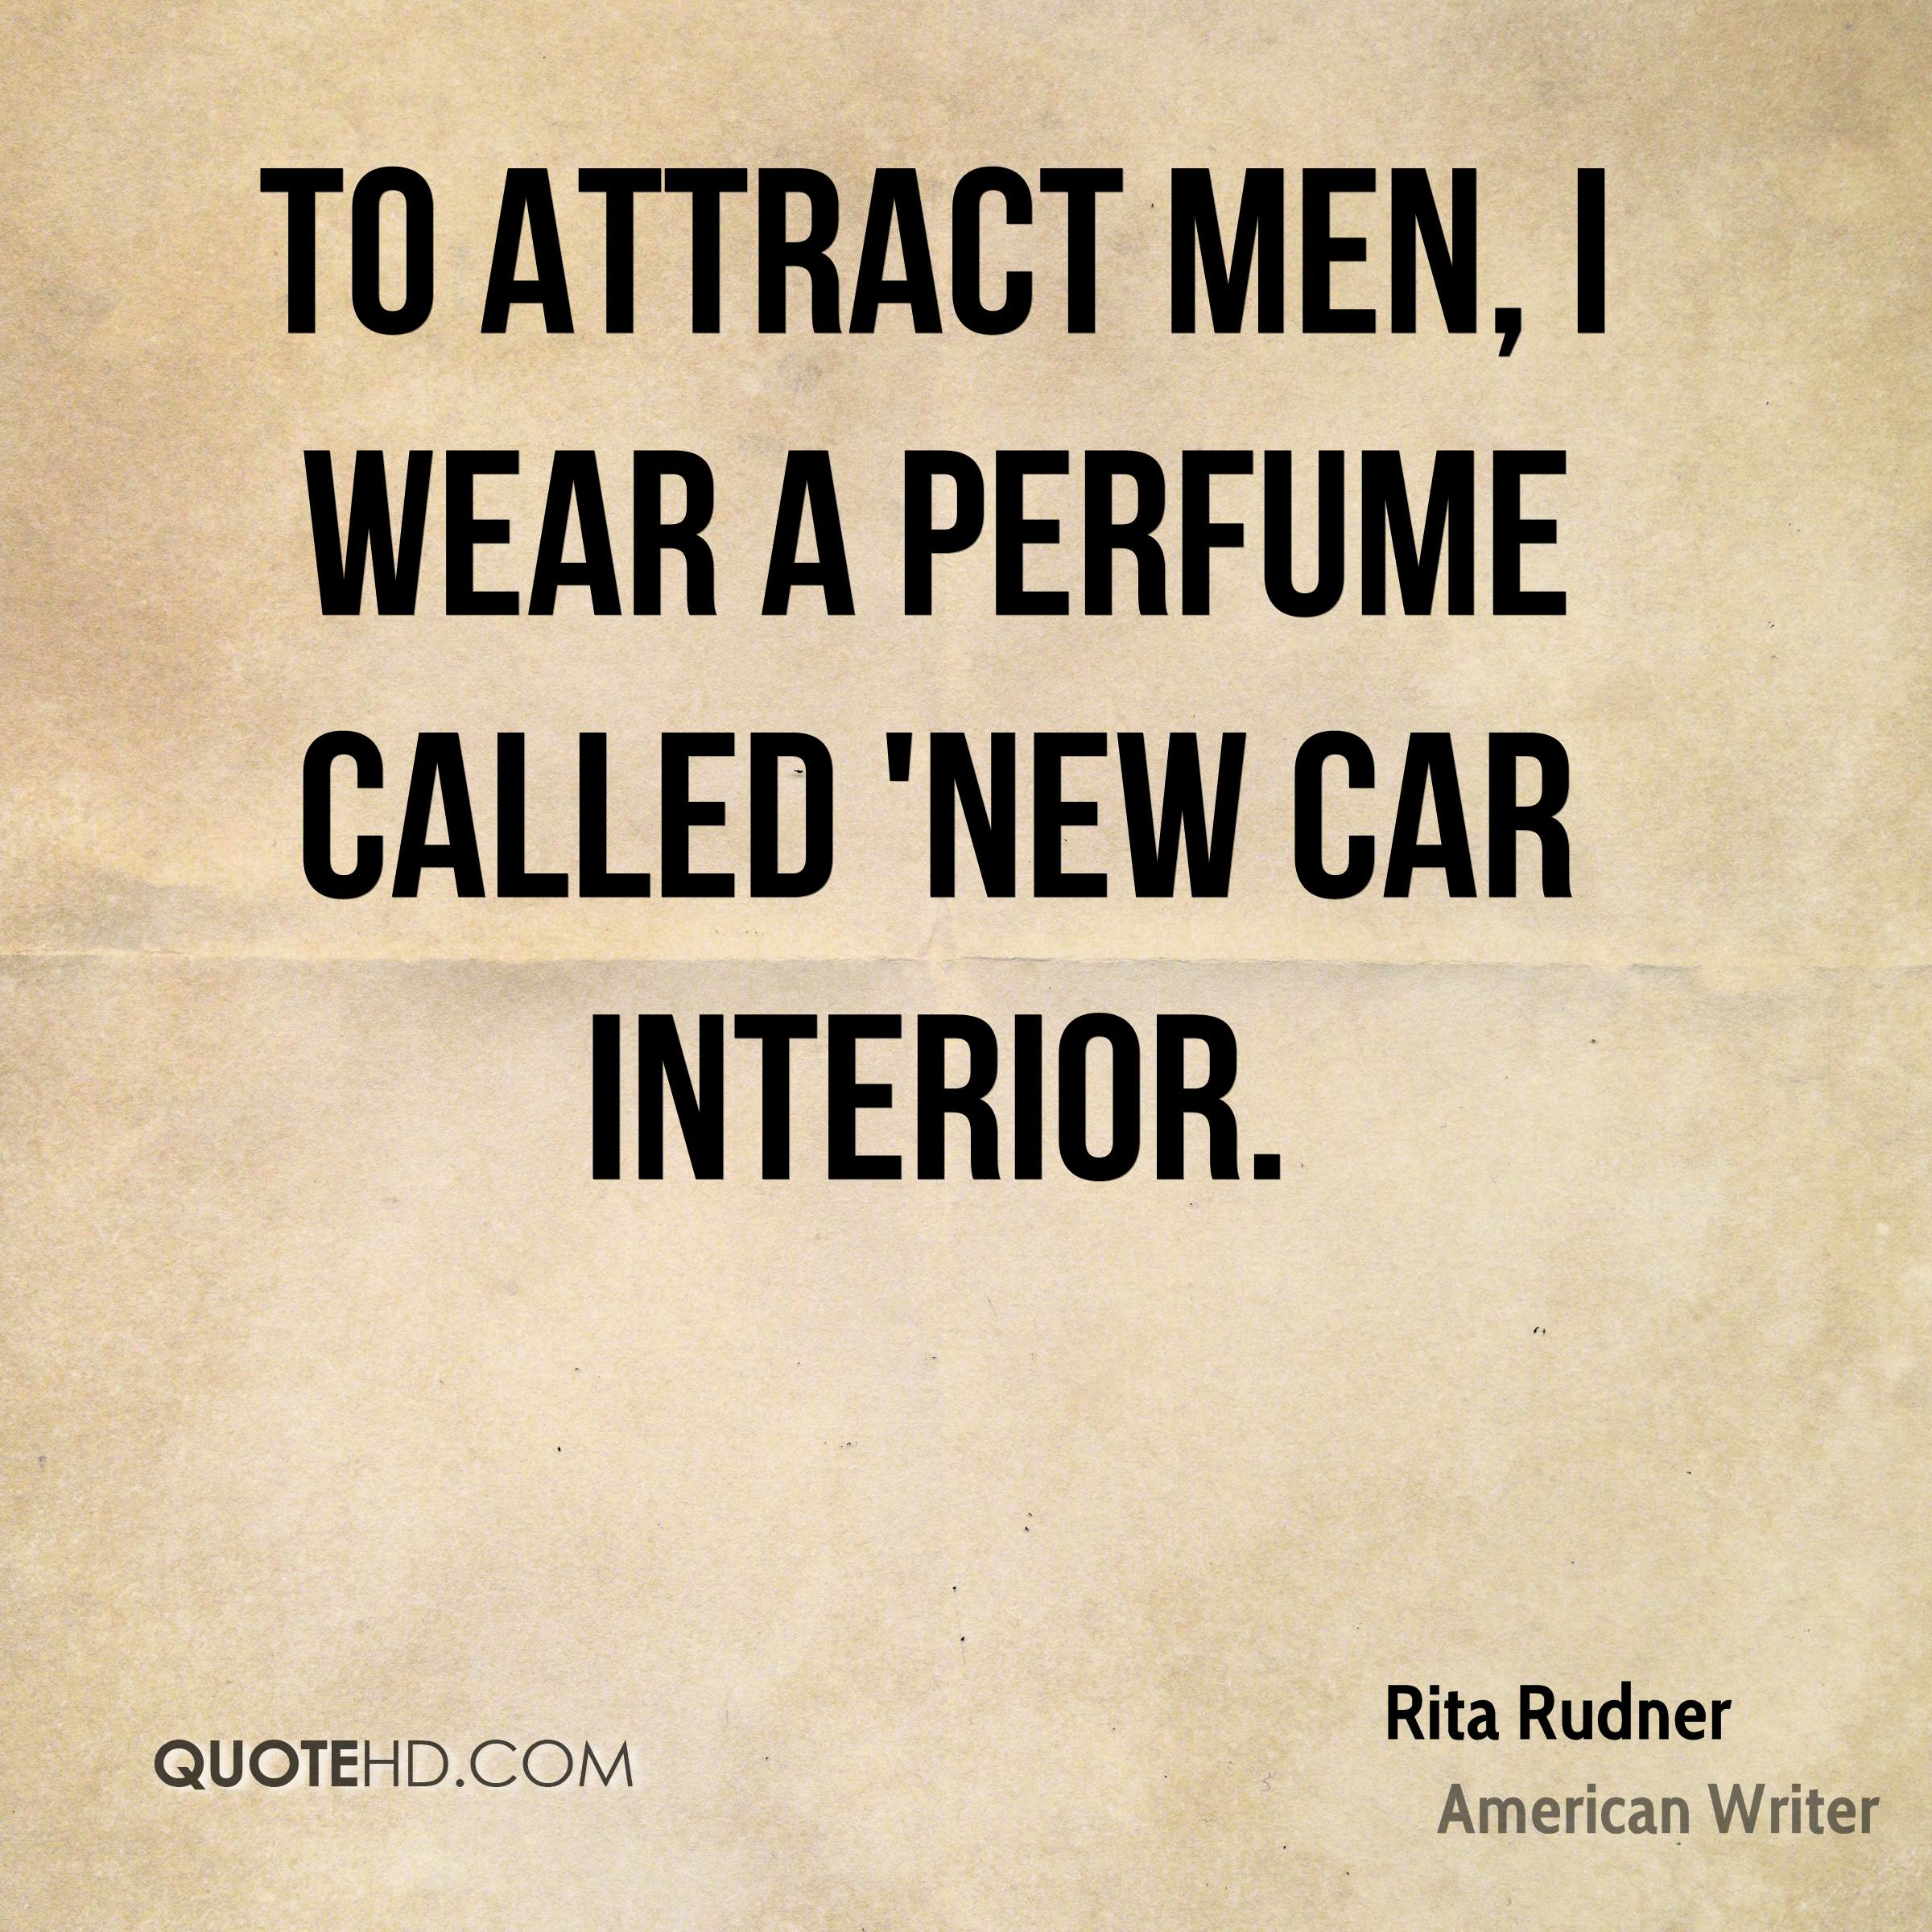 rita rudner quotes quotehd. Black Bedroom Furniture Sets. Home Design Ideas